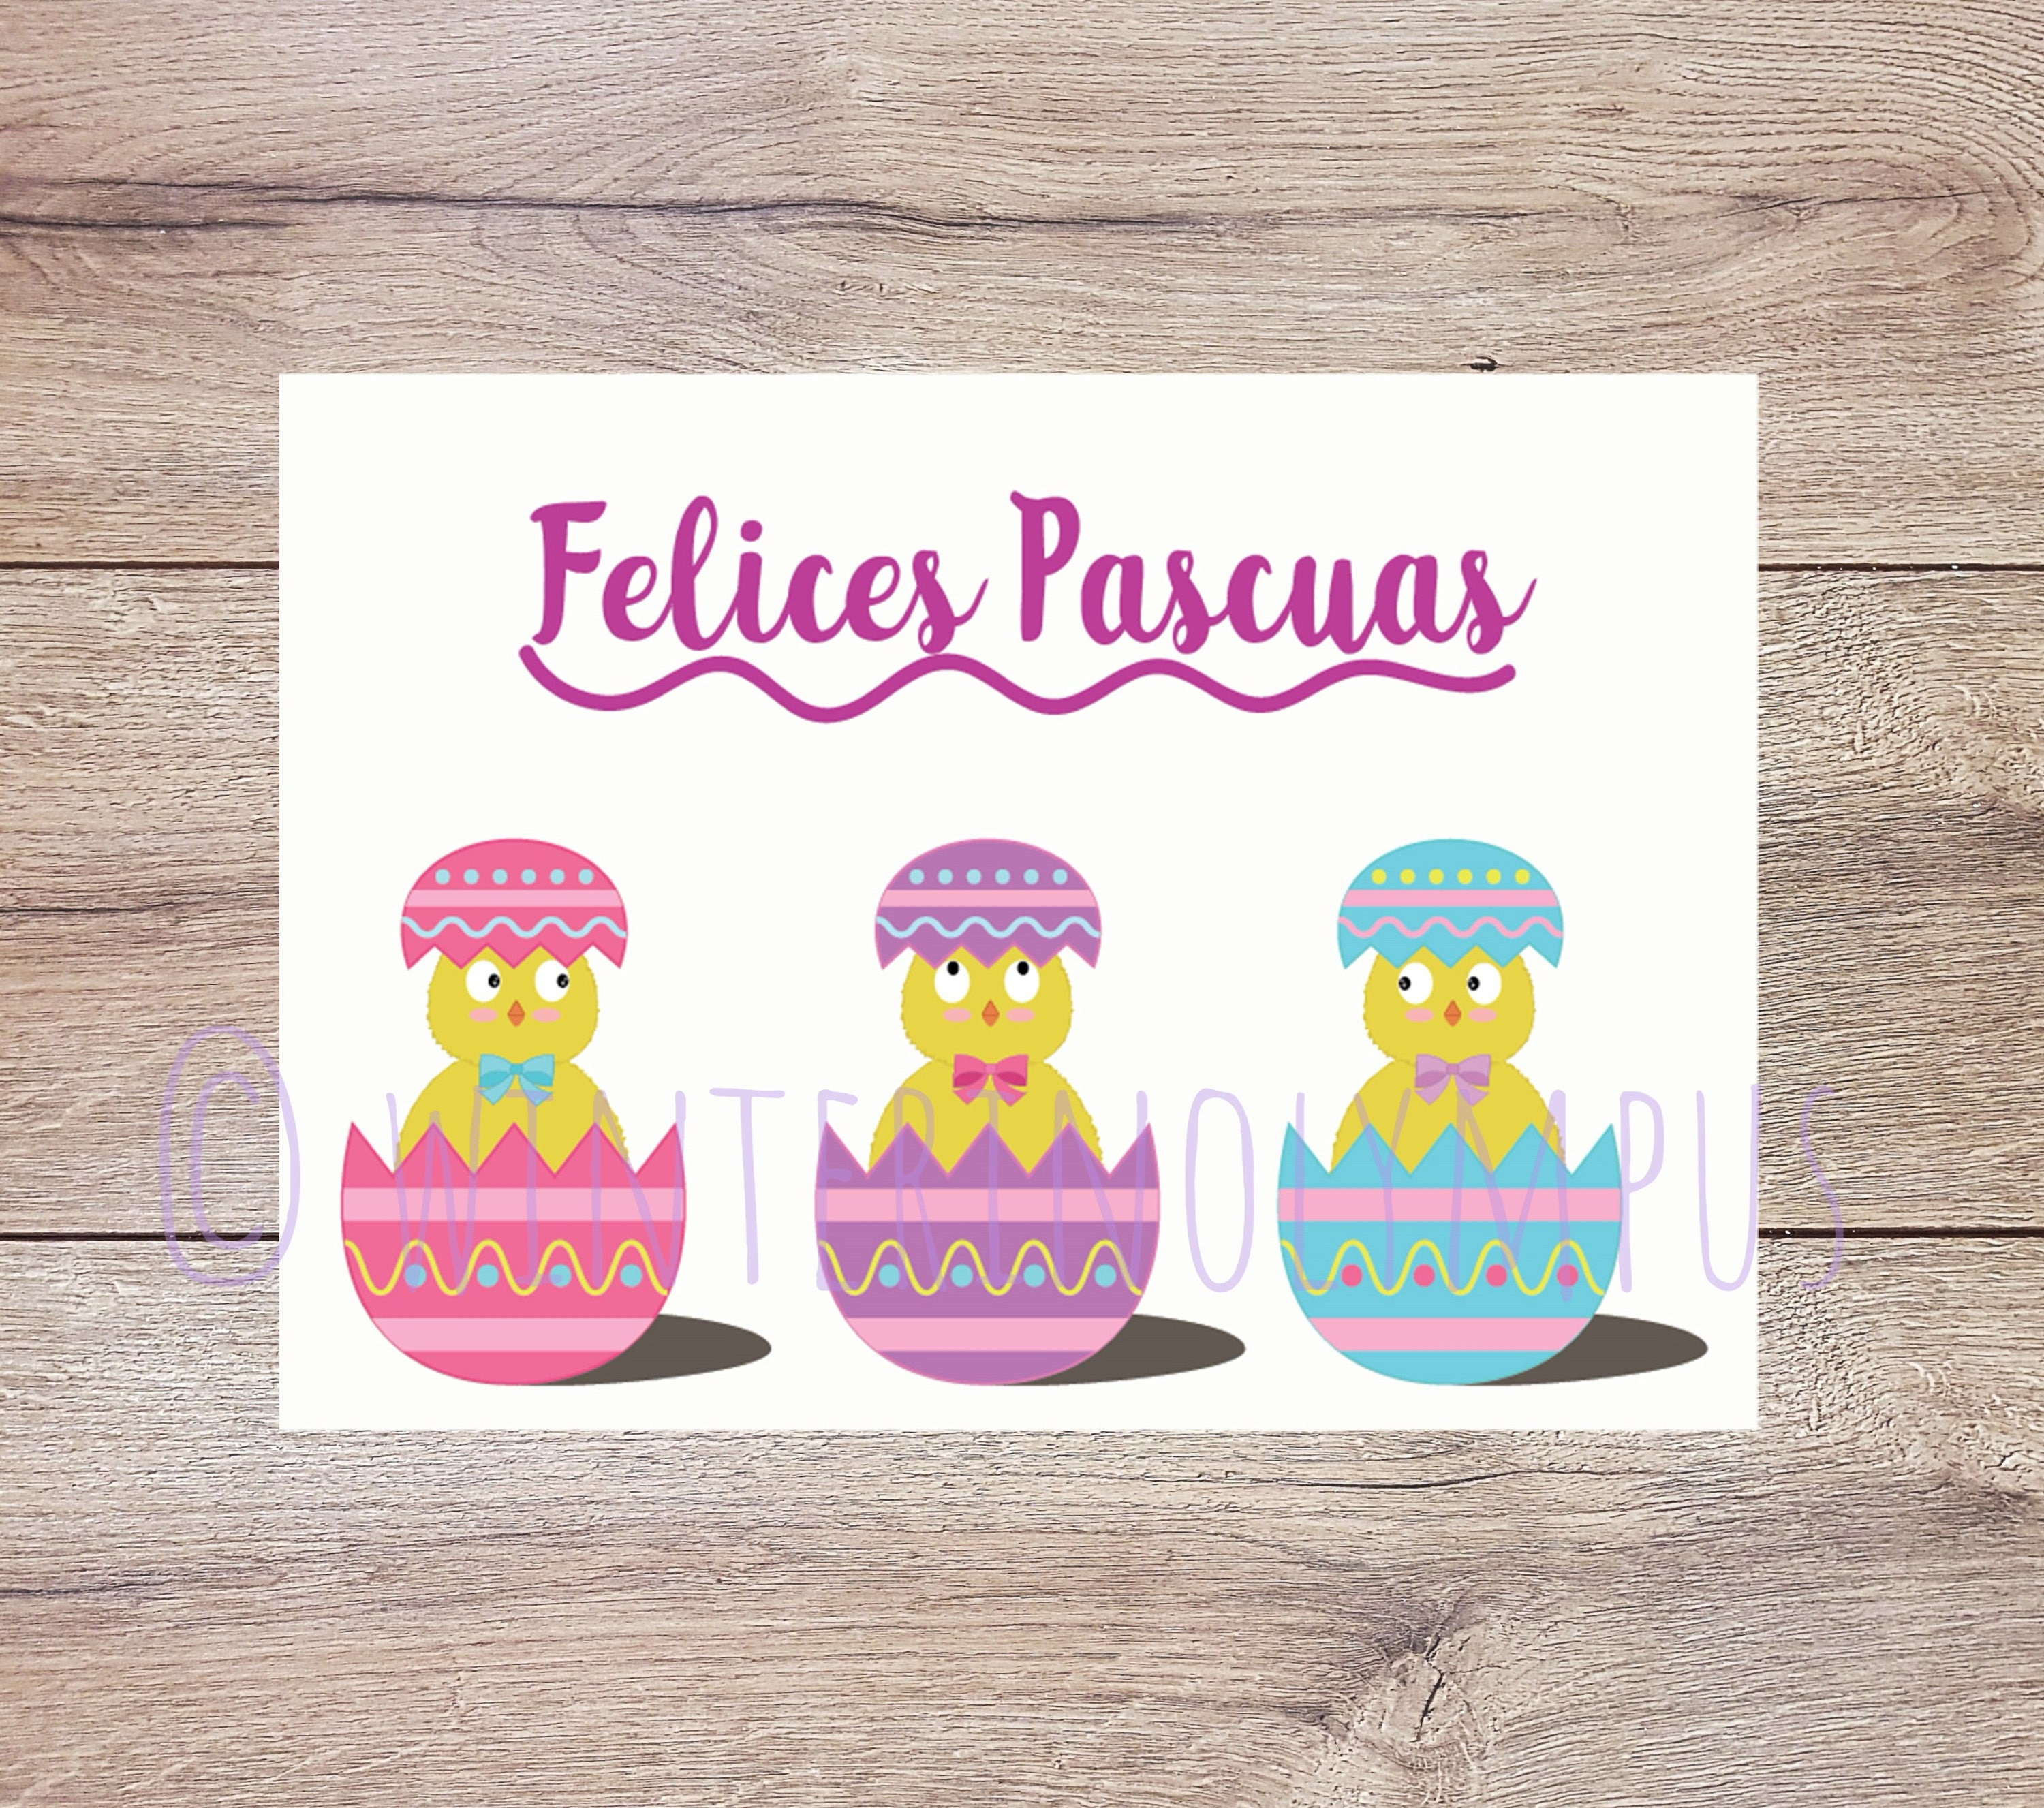 Spanish Easter Greeting Card Printable With Easter Eggs Etsy